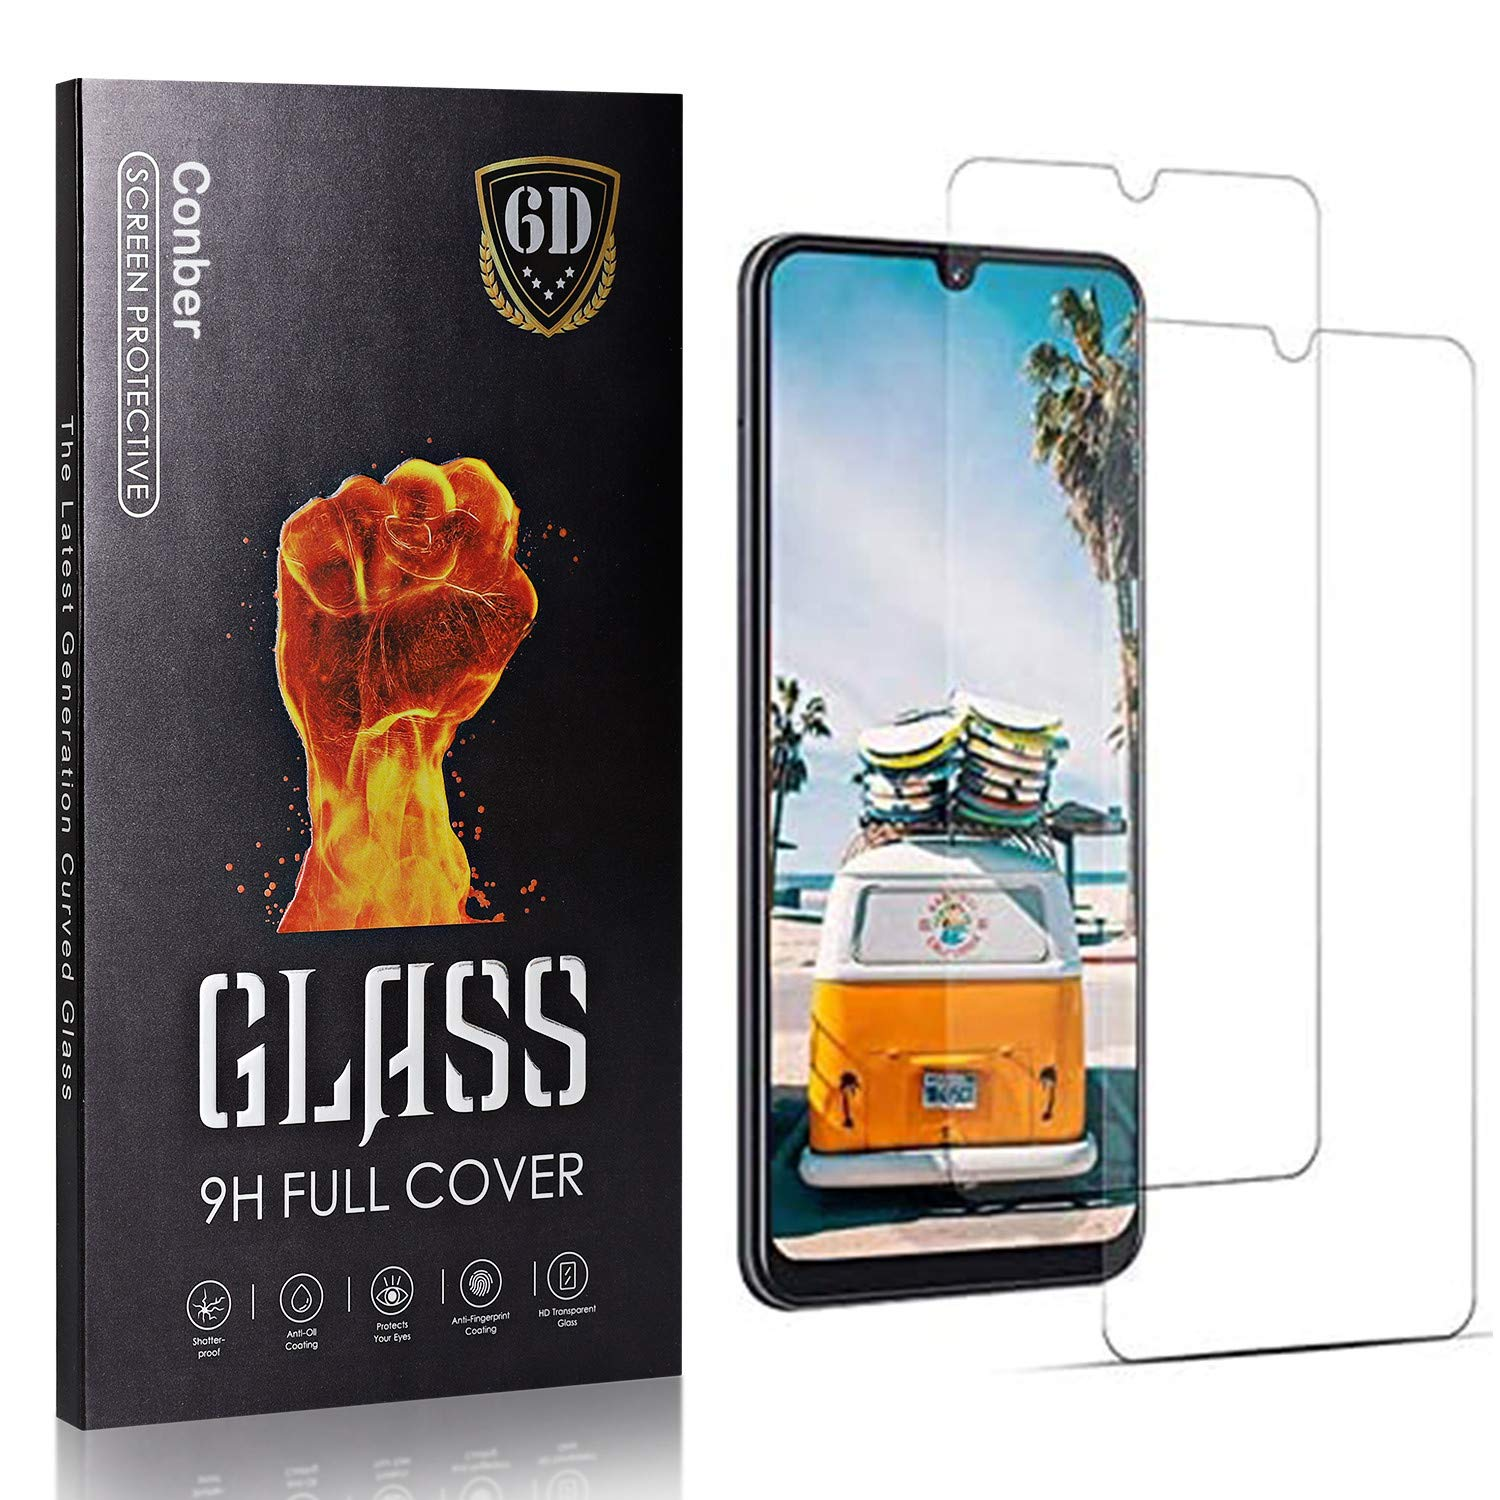 Conber 2 Pack Memphis Mall Screen Protector Temper Max 40% OFF for Samsung A70S Galaxy